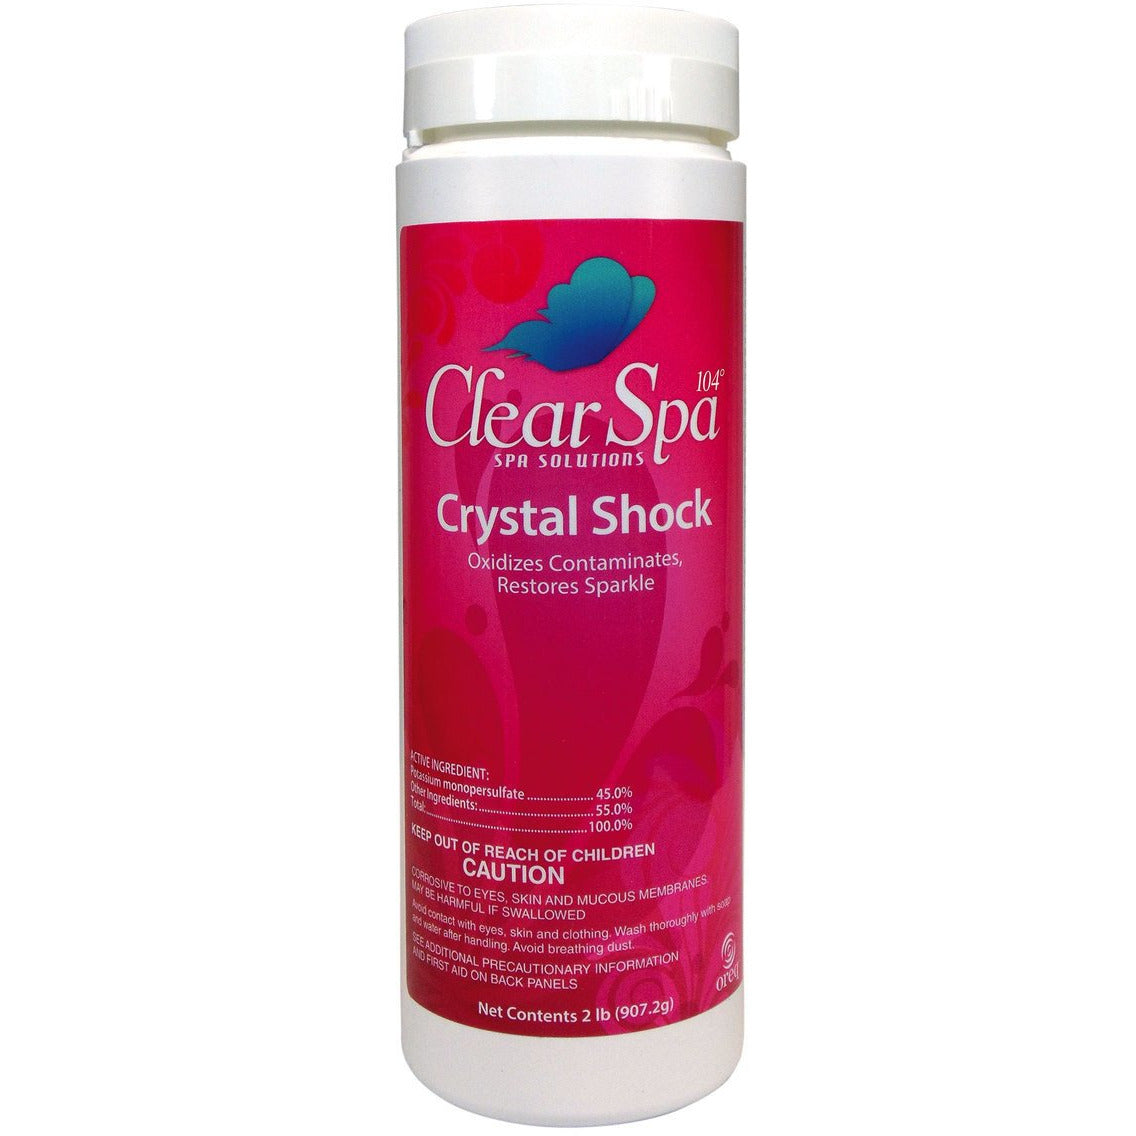 ClearSpa Crystal Shock Oxidizer